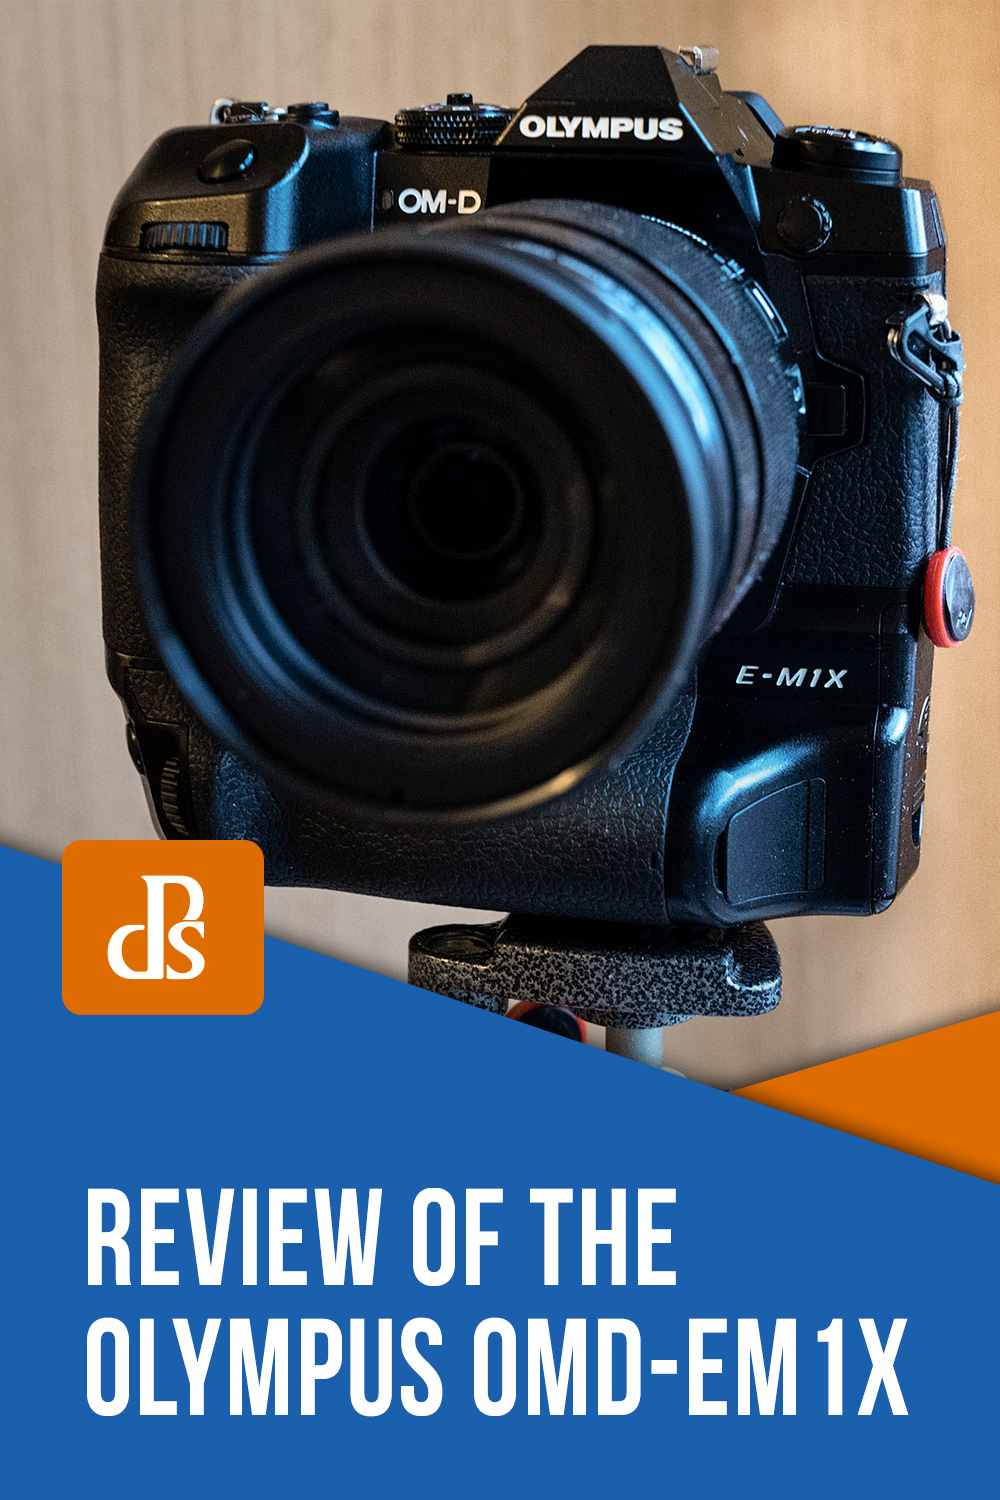 review-olympus-omd-em1x-camera